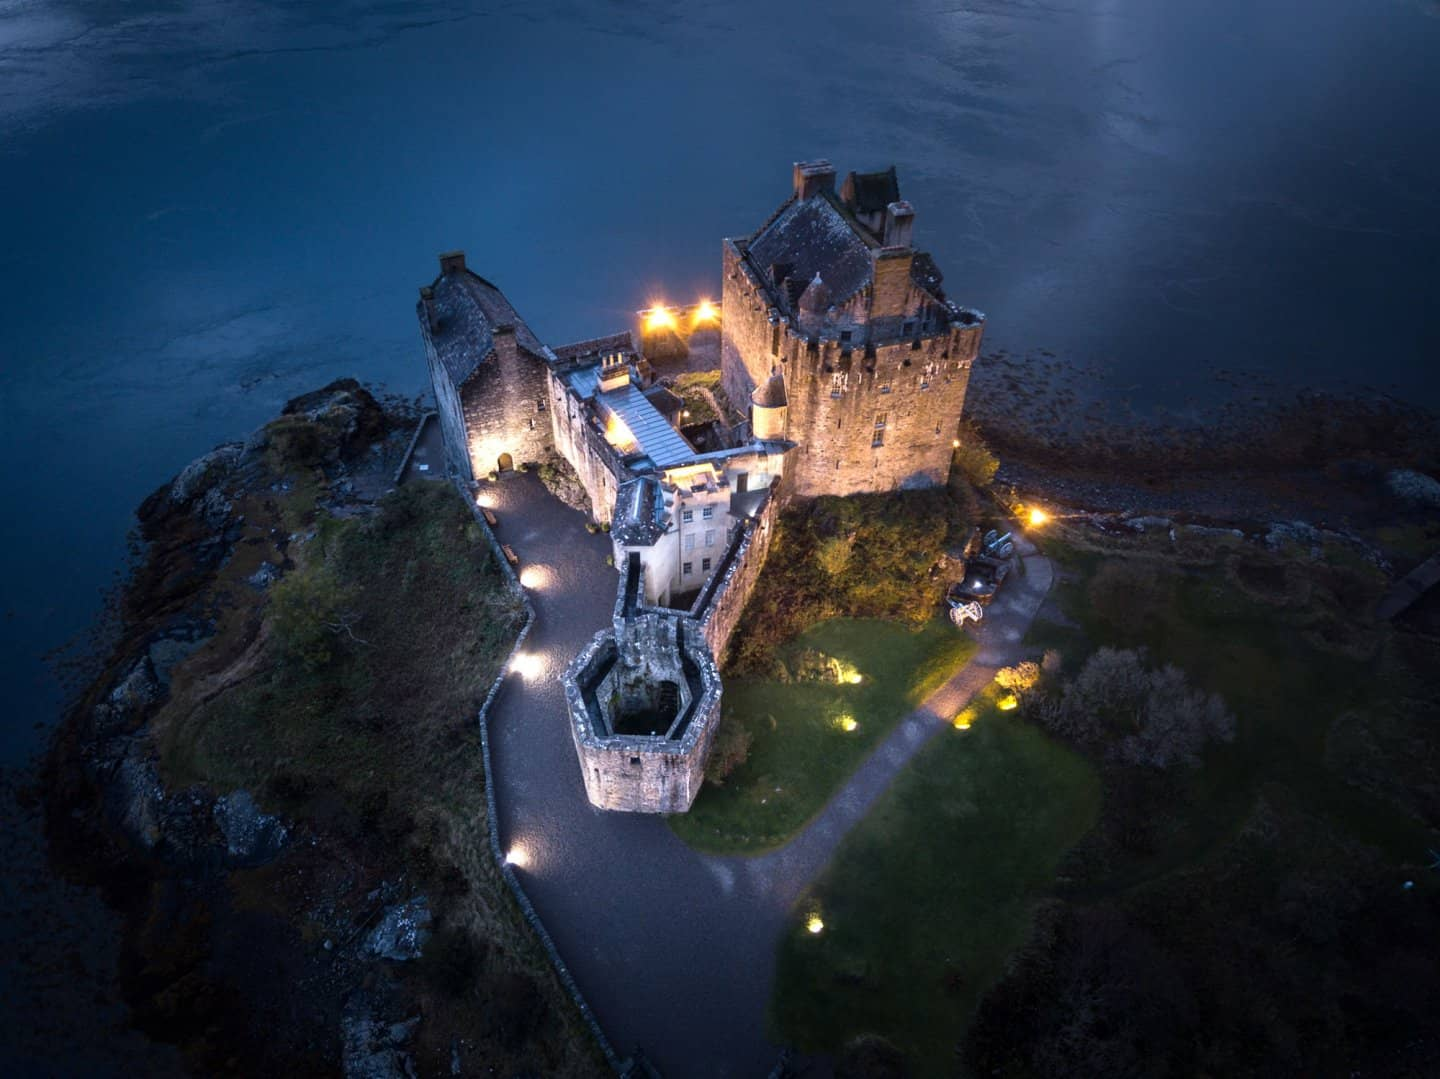 Looking down at Eilean Donan Castle at night from a drone.